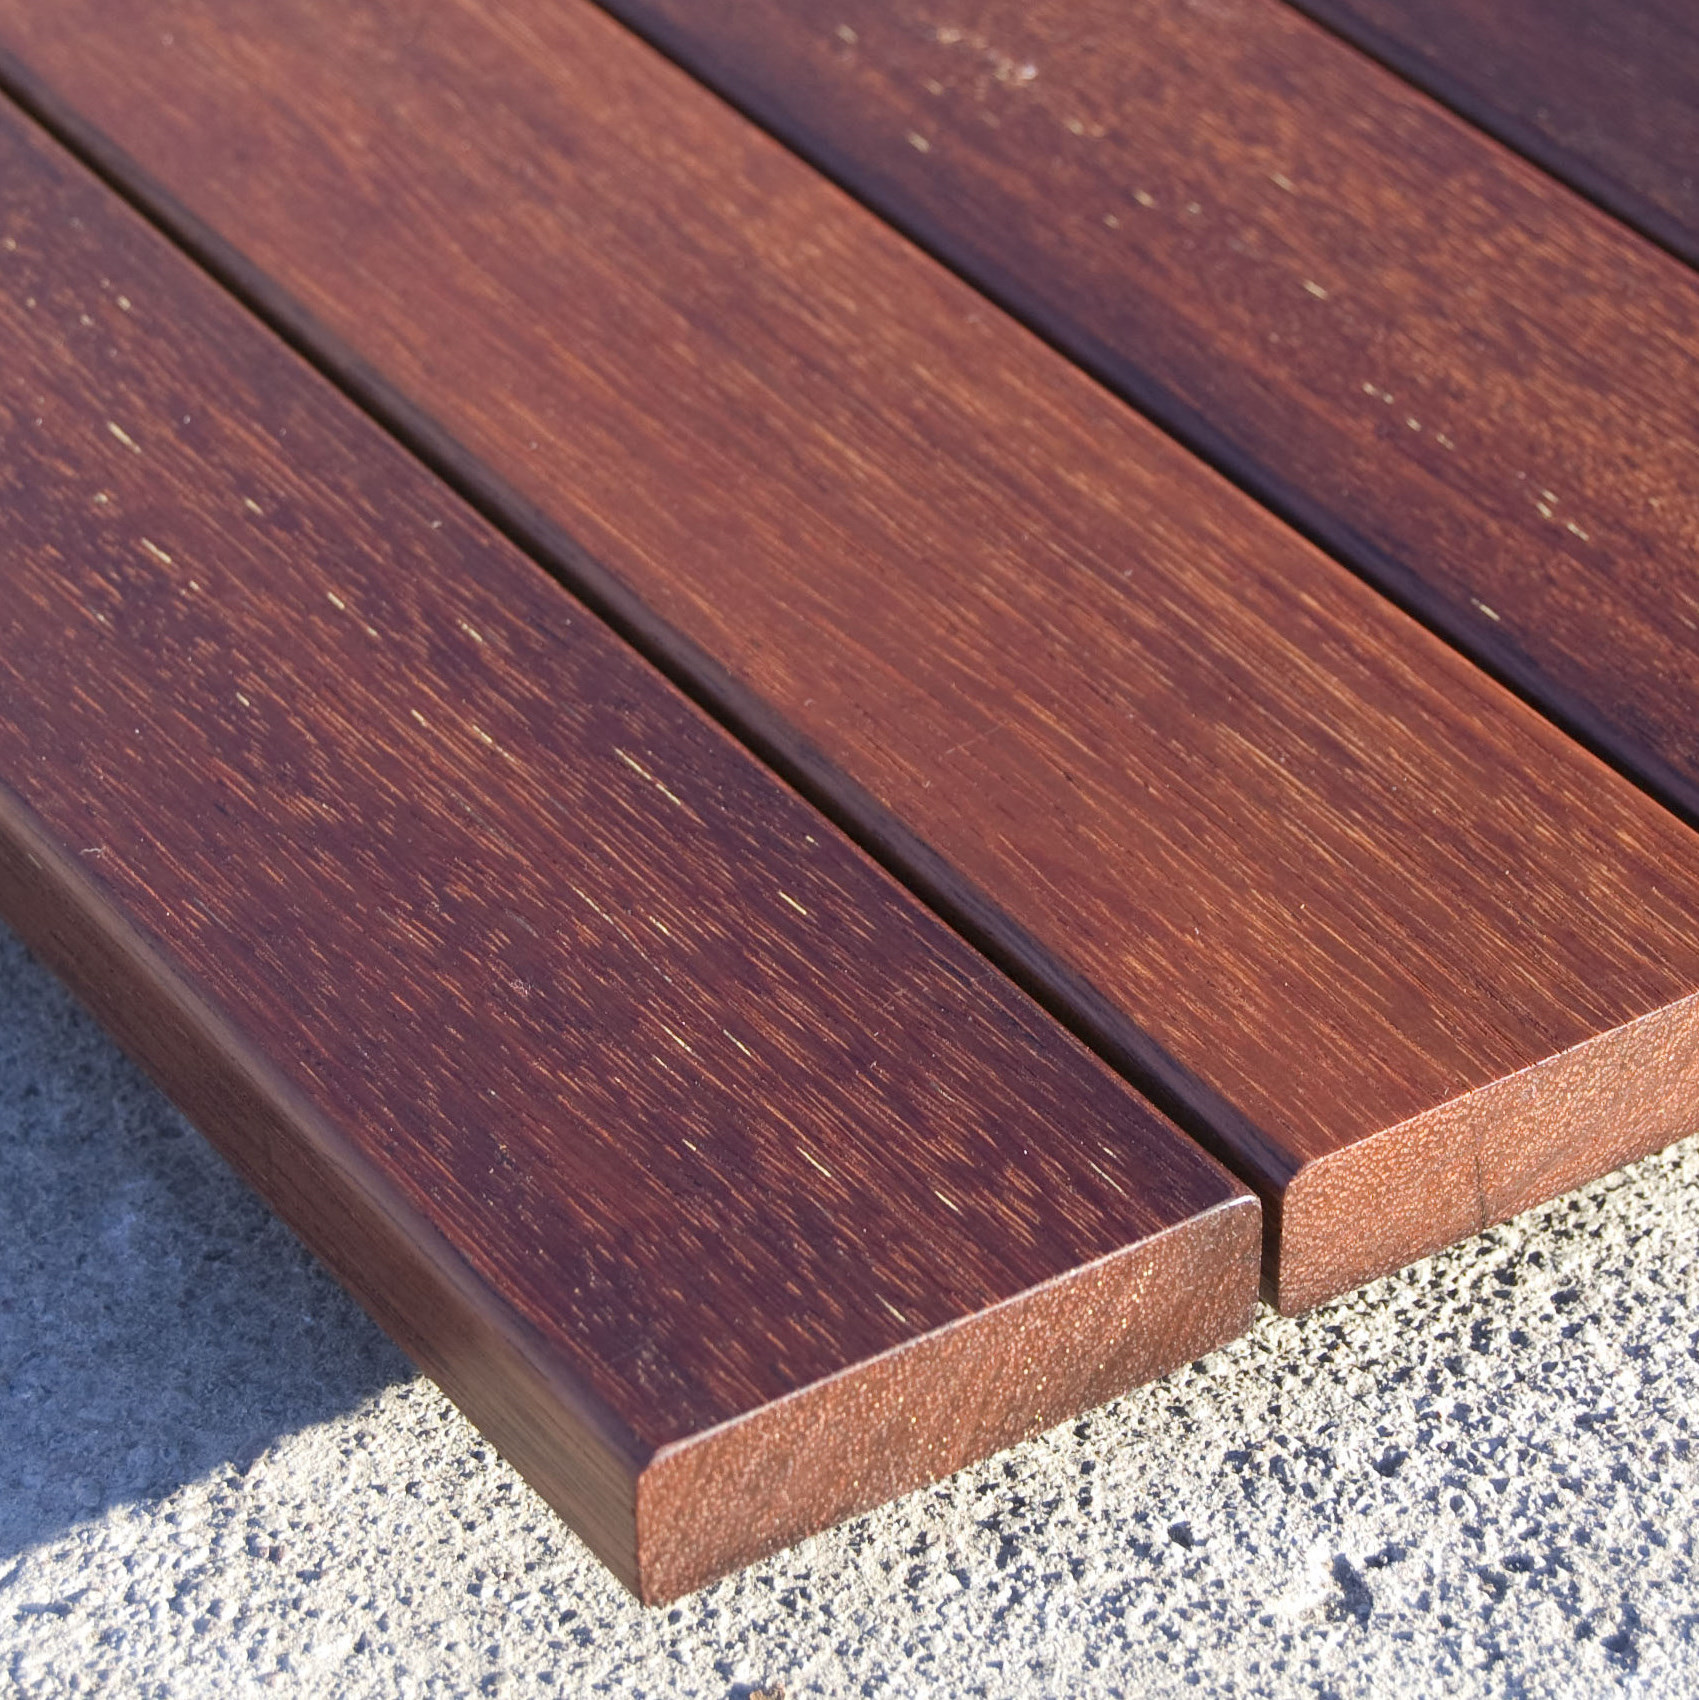 Tropical Hardwood For Garden And Decking